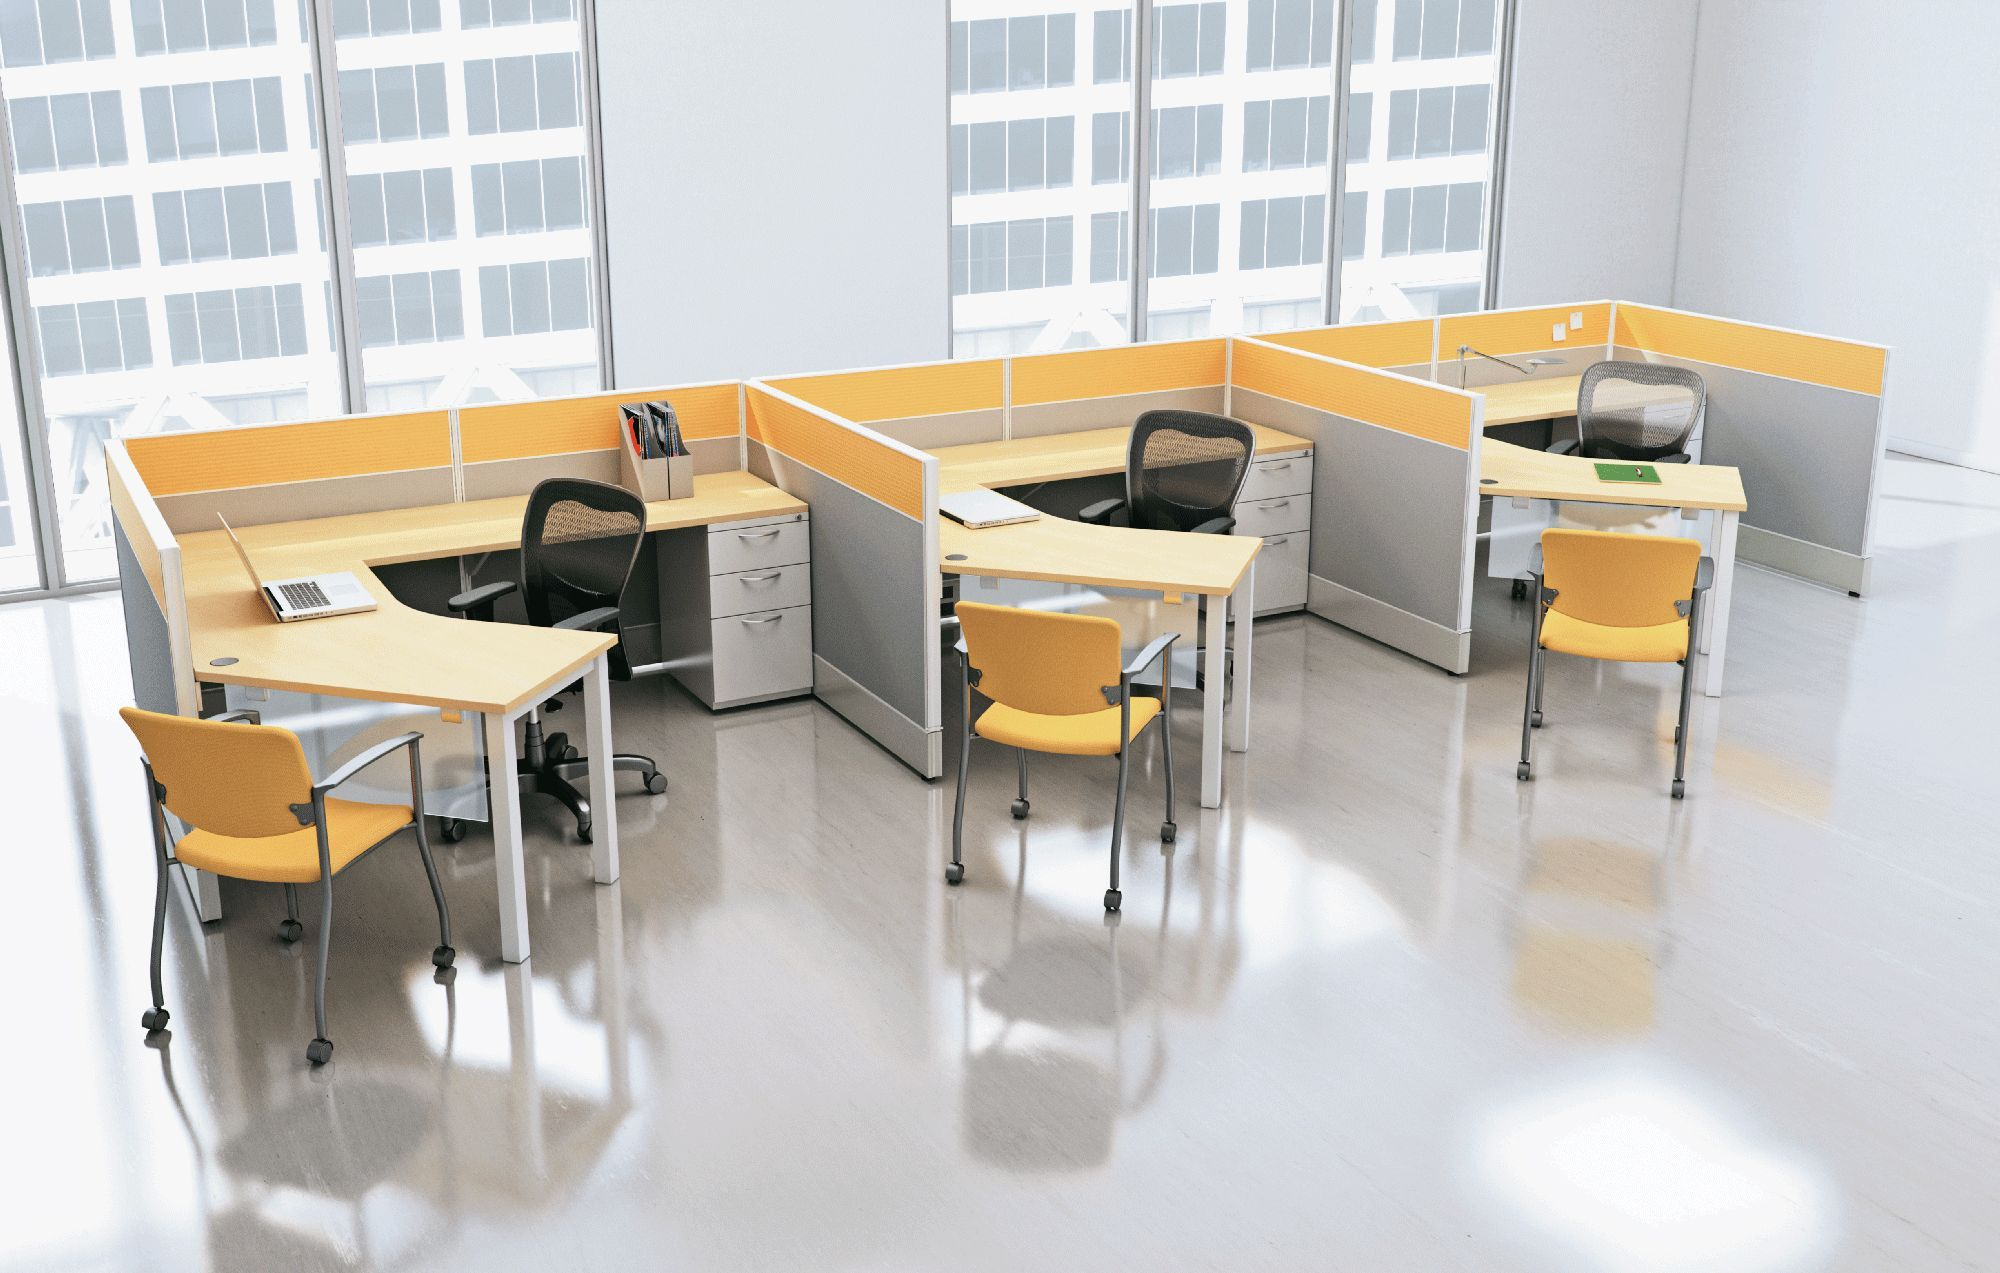 office cubicle designs. Great Deals On Business Furniture Are At Atlanta Office Liquidators. Browse Through Our Vast Selection And See How Much You Can Save The AIS Inc. Cubicle Designs C